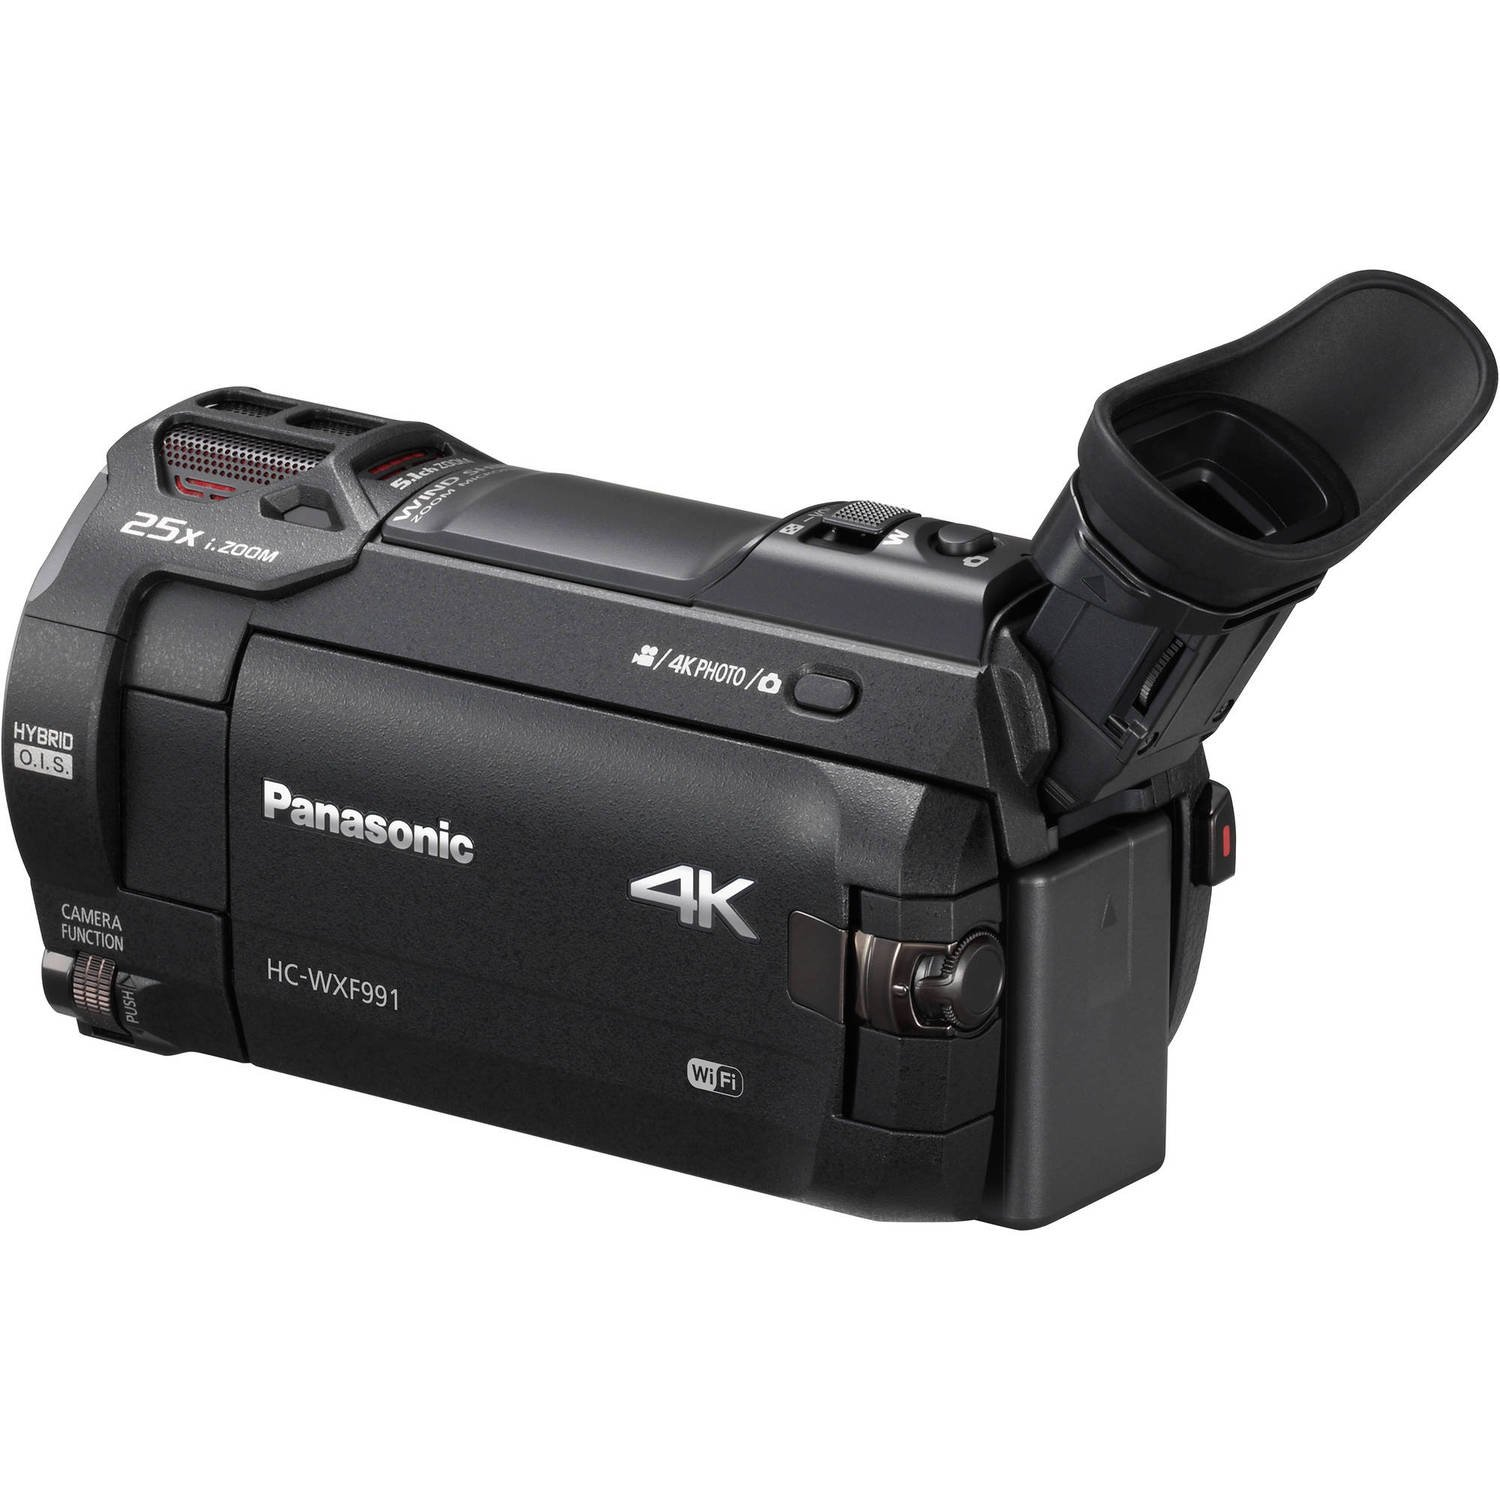 Buy Panasonic Hc Wxf995 4k Ultra Hd Camcorder With 16gb Card Online V385 Kamera Video At Low Price In India Camera Reviews Ratings